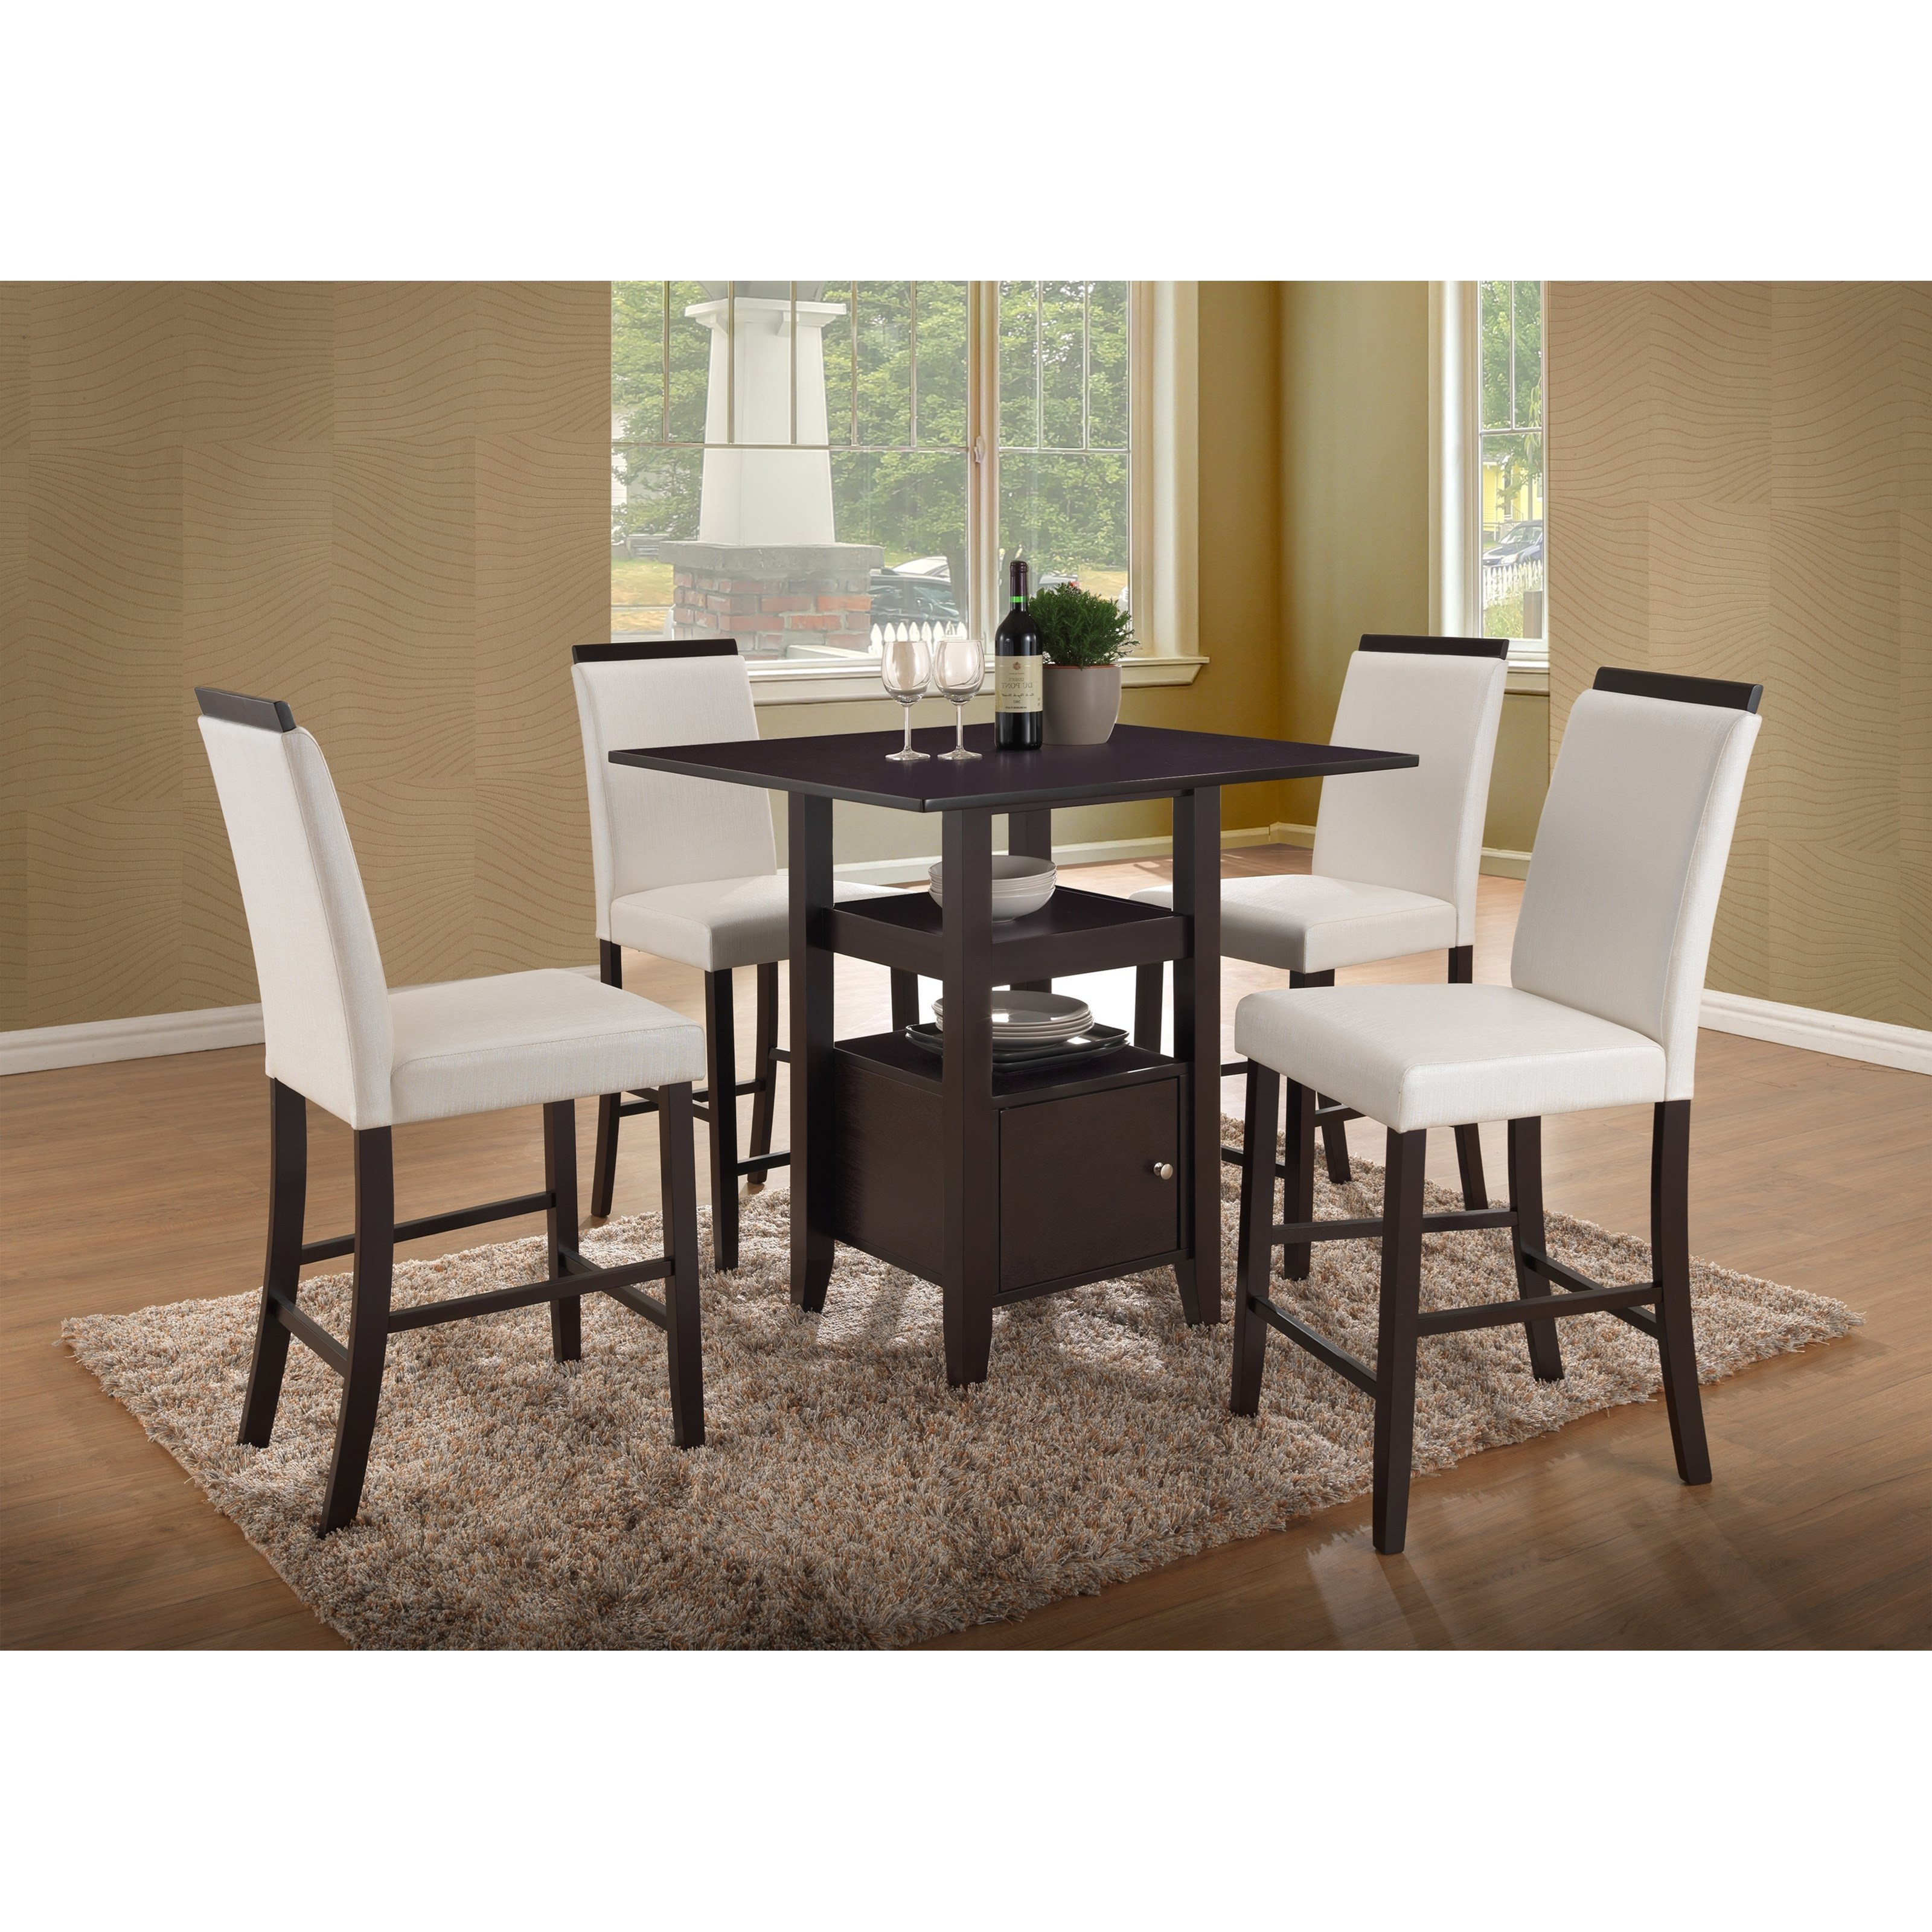 New Classic Natasha 5 Piece Wood Counter Table Set - Item Number: D3972-12W+4x23WH